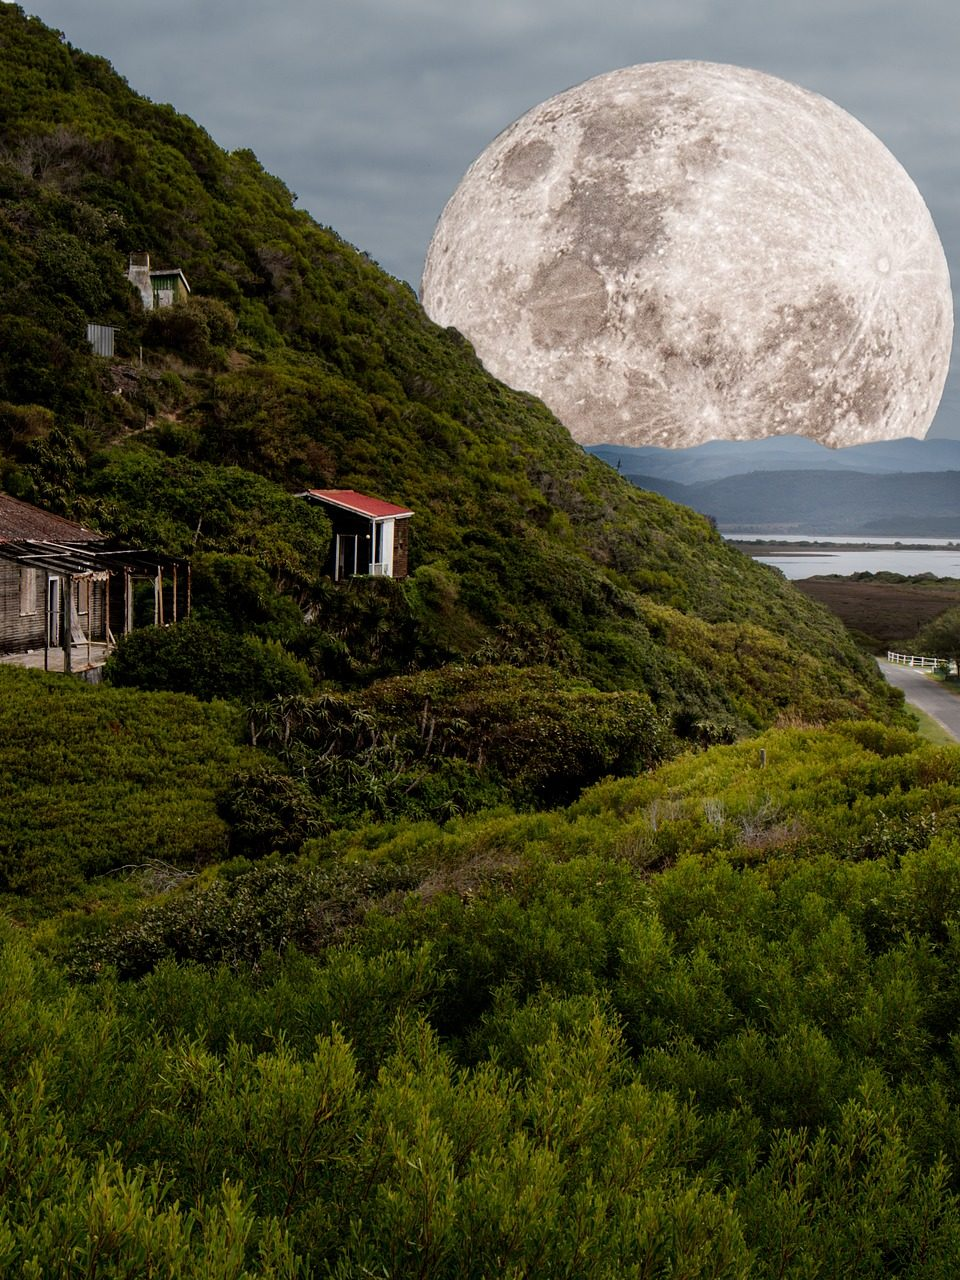 https://www.planetavenue.com/wp-content/uploads/2018/08/supermoon-1840957_1920-960x1280.jpg